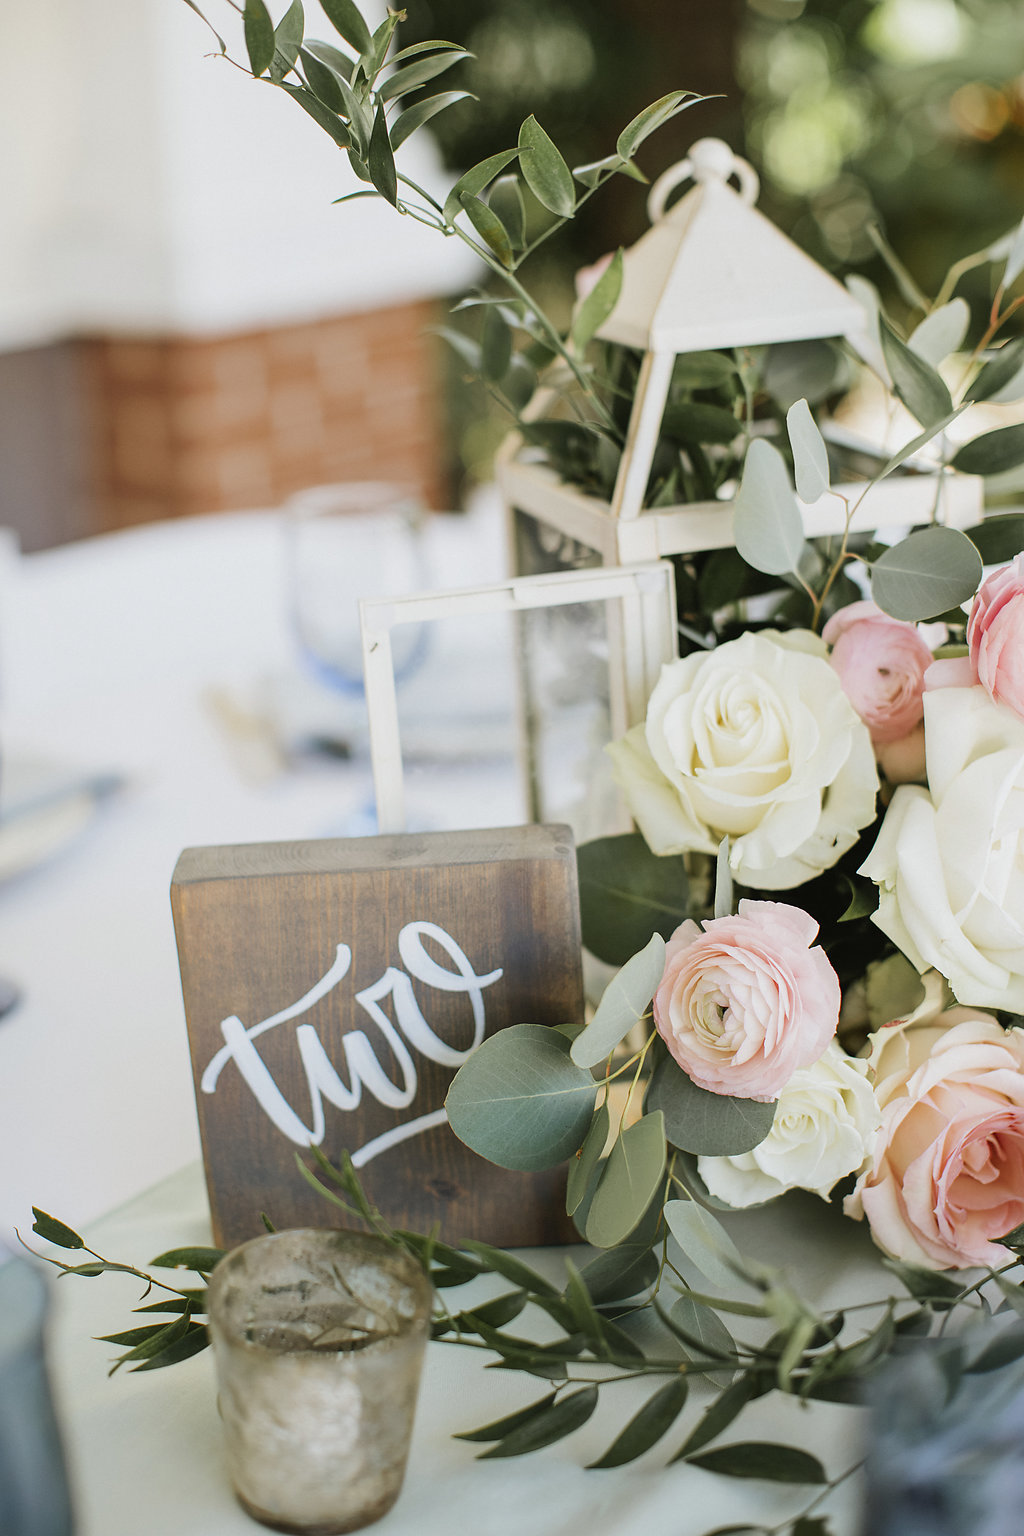 Romantic Vintage Outdoor Wedding Reception Decor | Wood Block Table Number and Lantern Pastel Peach and White Centerpieces